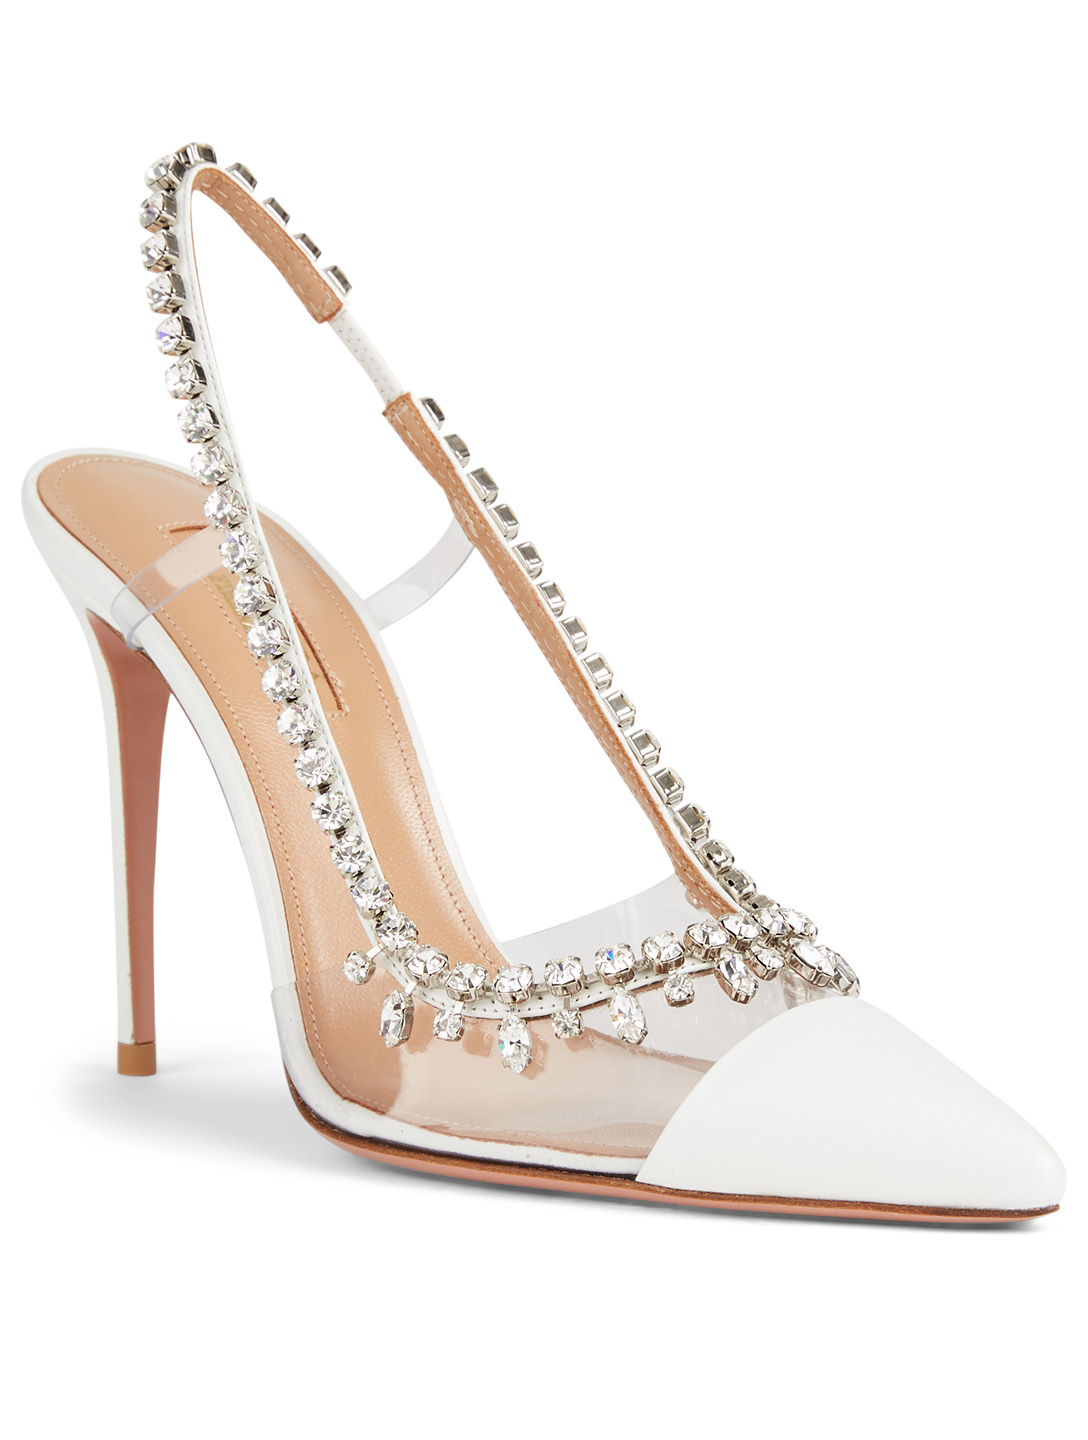 AQUAZZURA Temptation 105 PVC And Leather Slingback Pumps With Crystals Women's White